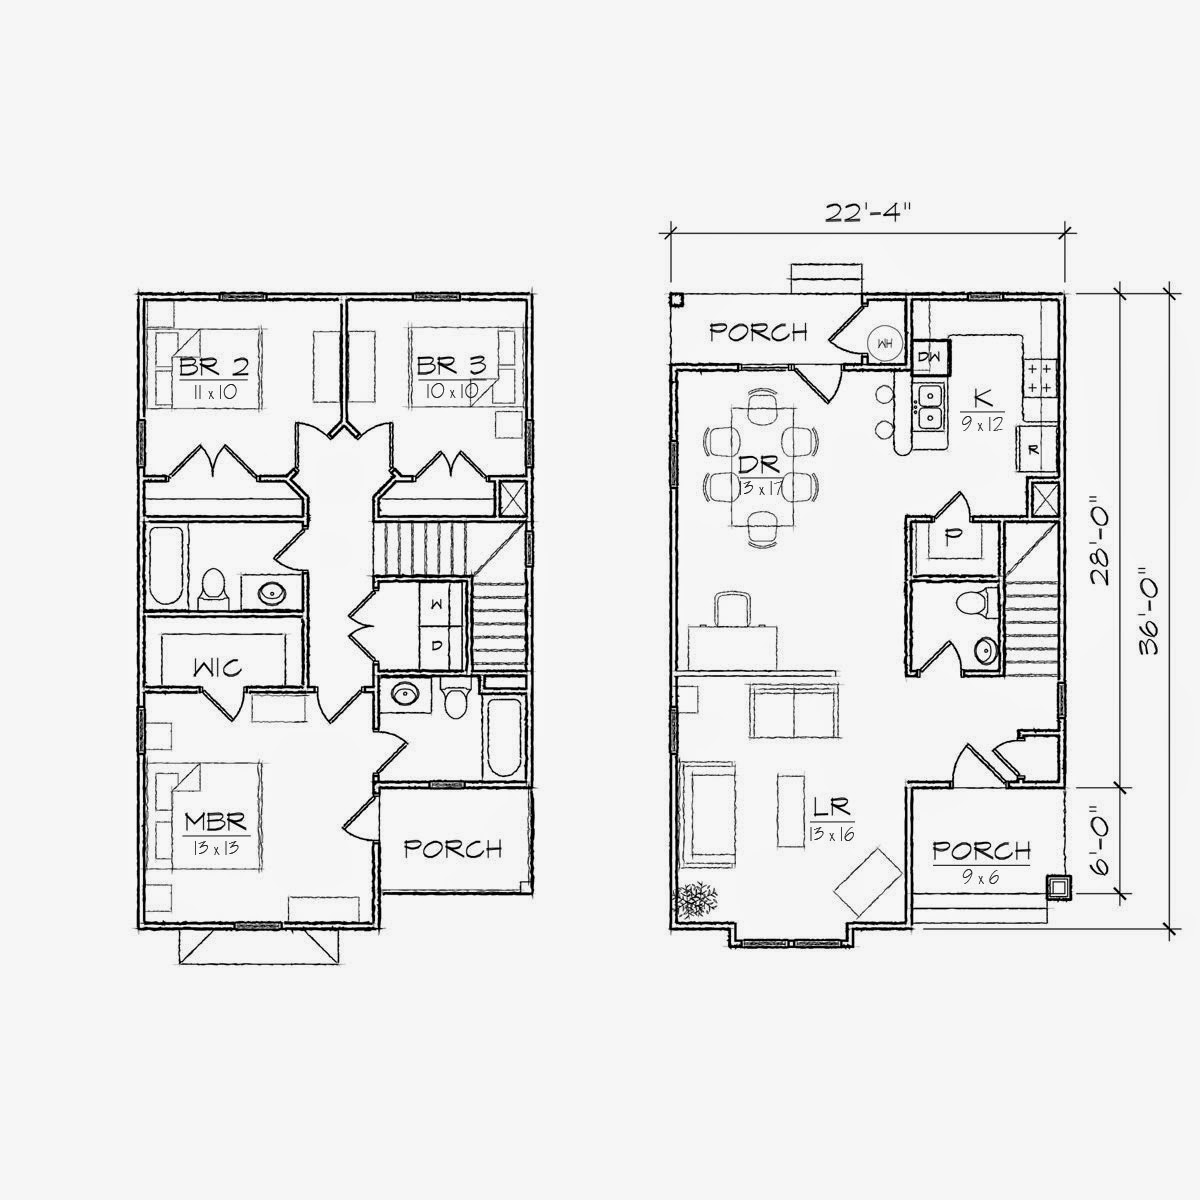 1000 Sq Ft Loft Lake House Plans Joy Studio Design